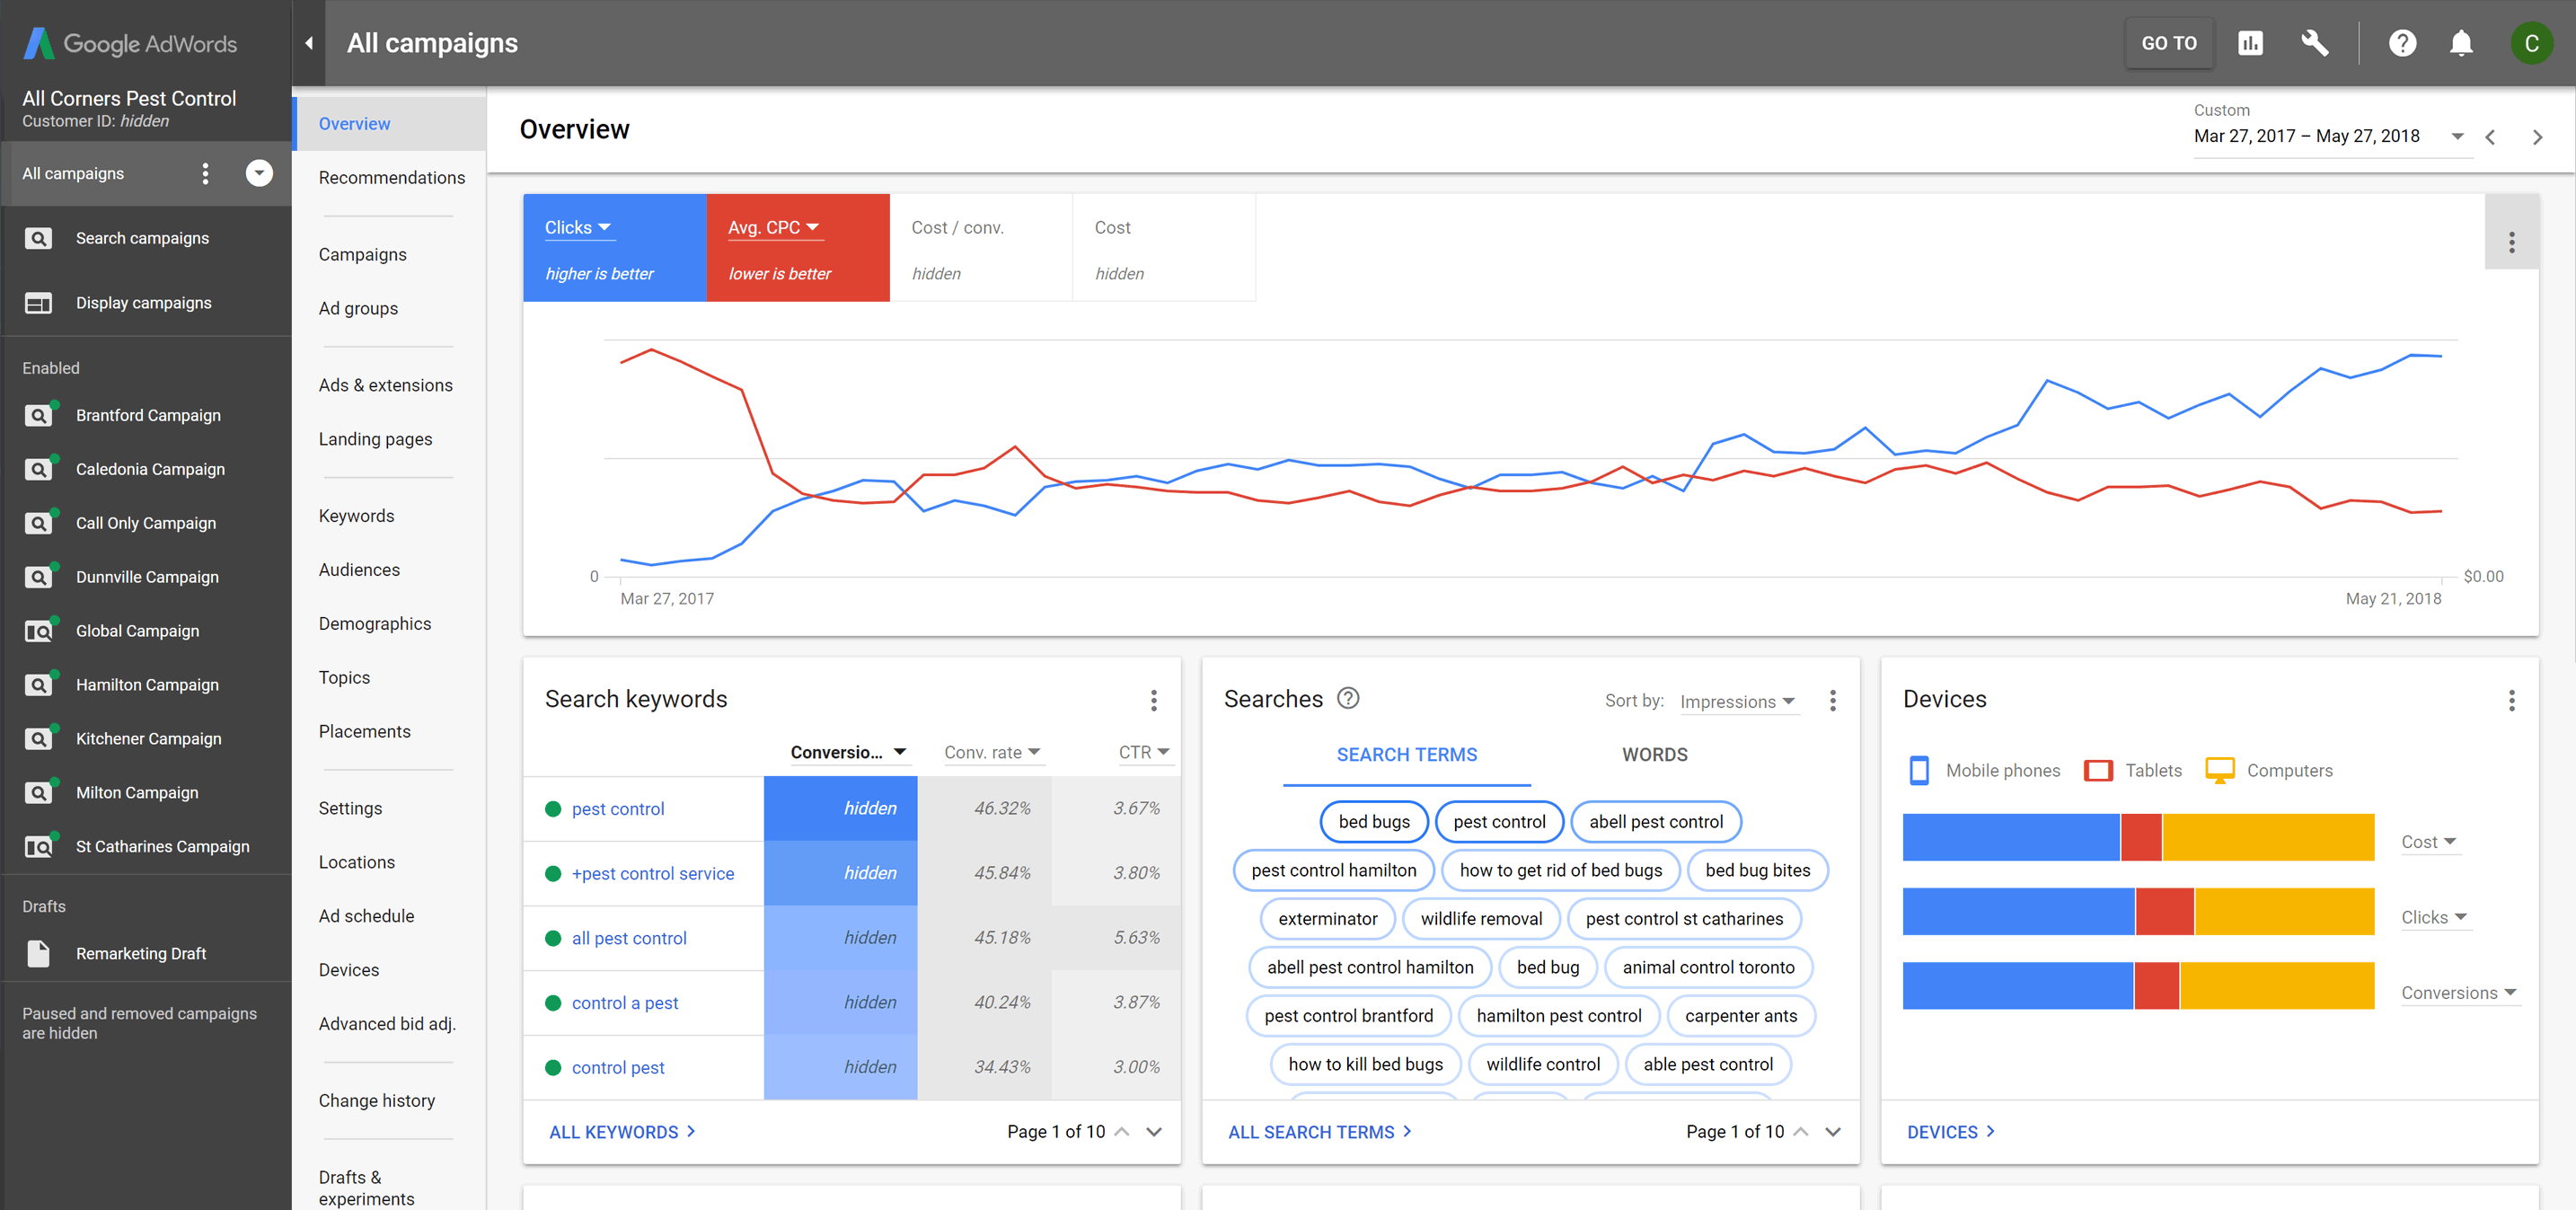 One-year Google Ads summary of All Corners Pest Control